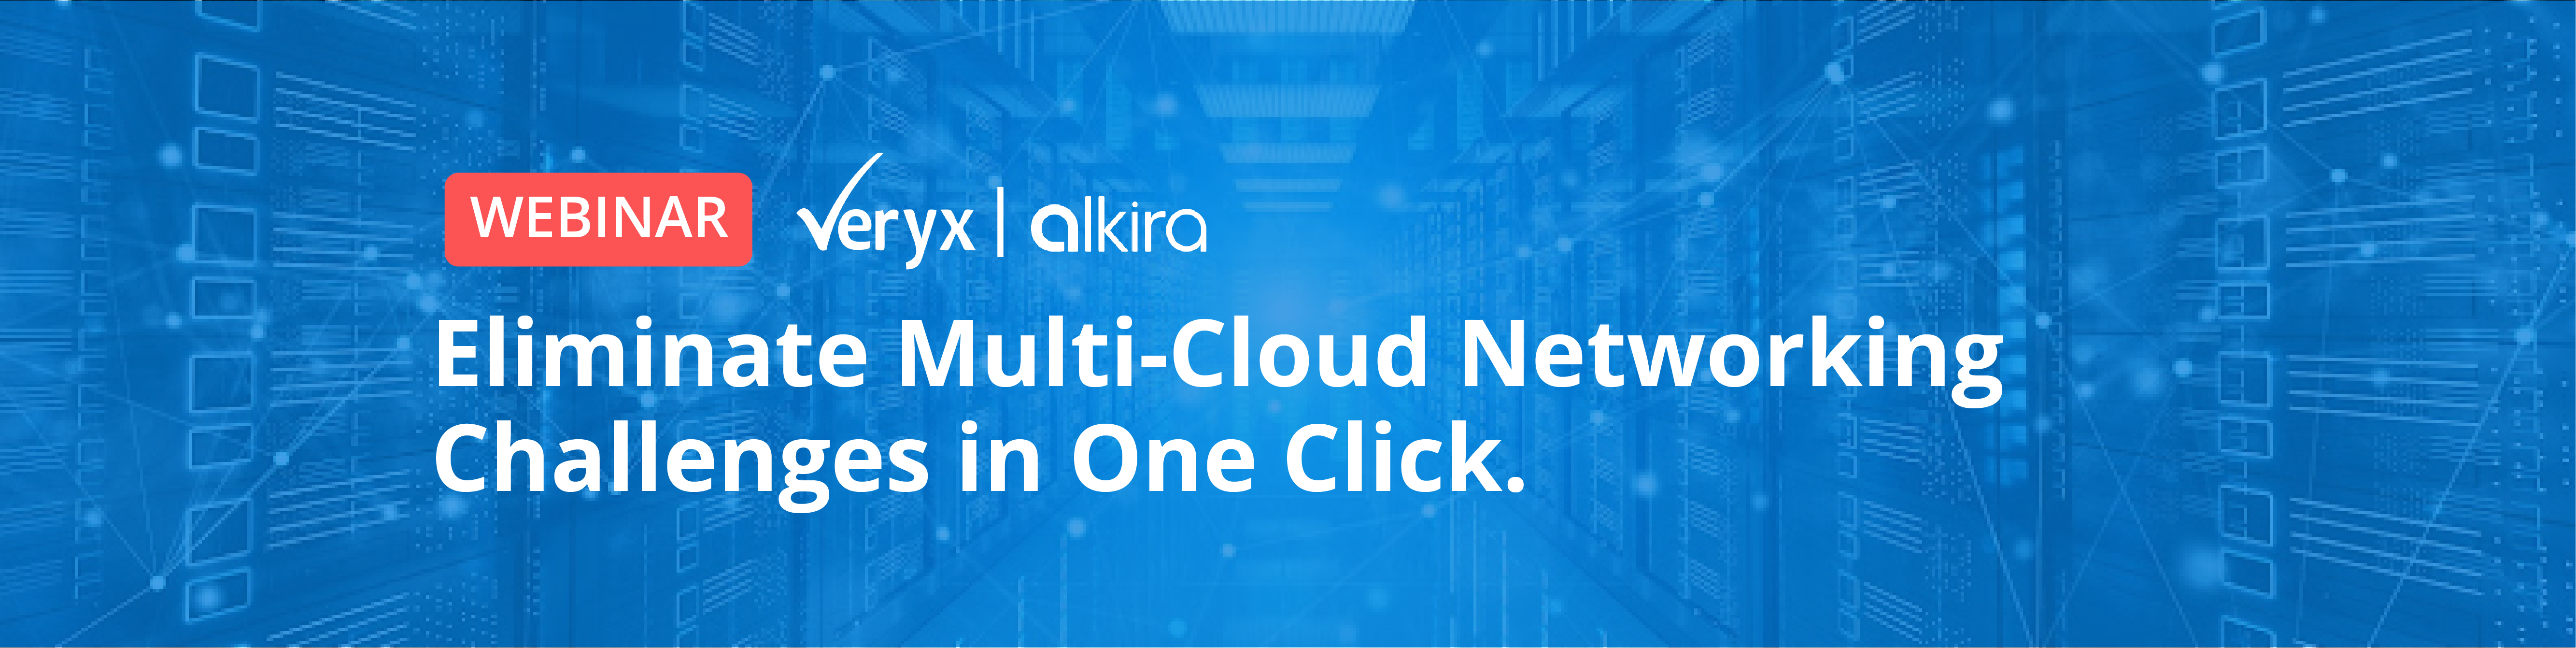 Webinar: Eliminate Multi-Cloud Networking Challenges in One Click